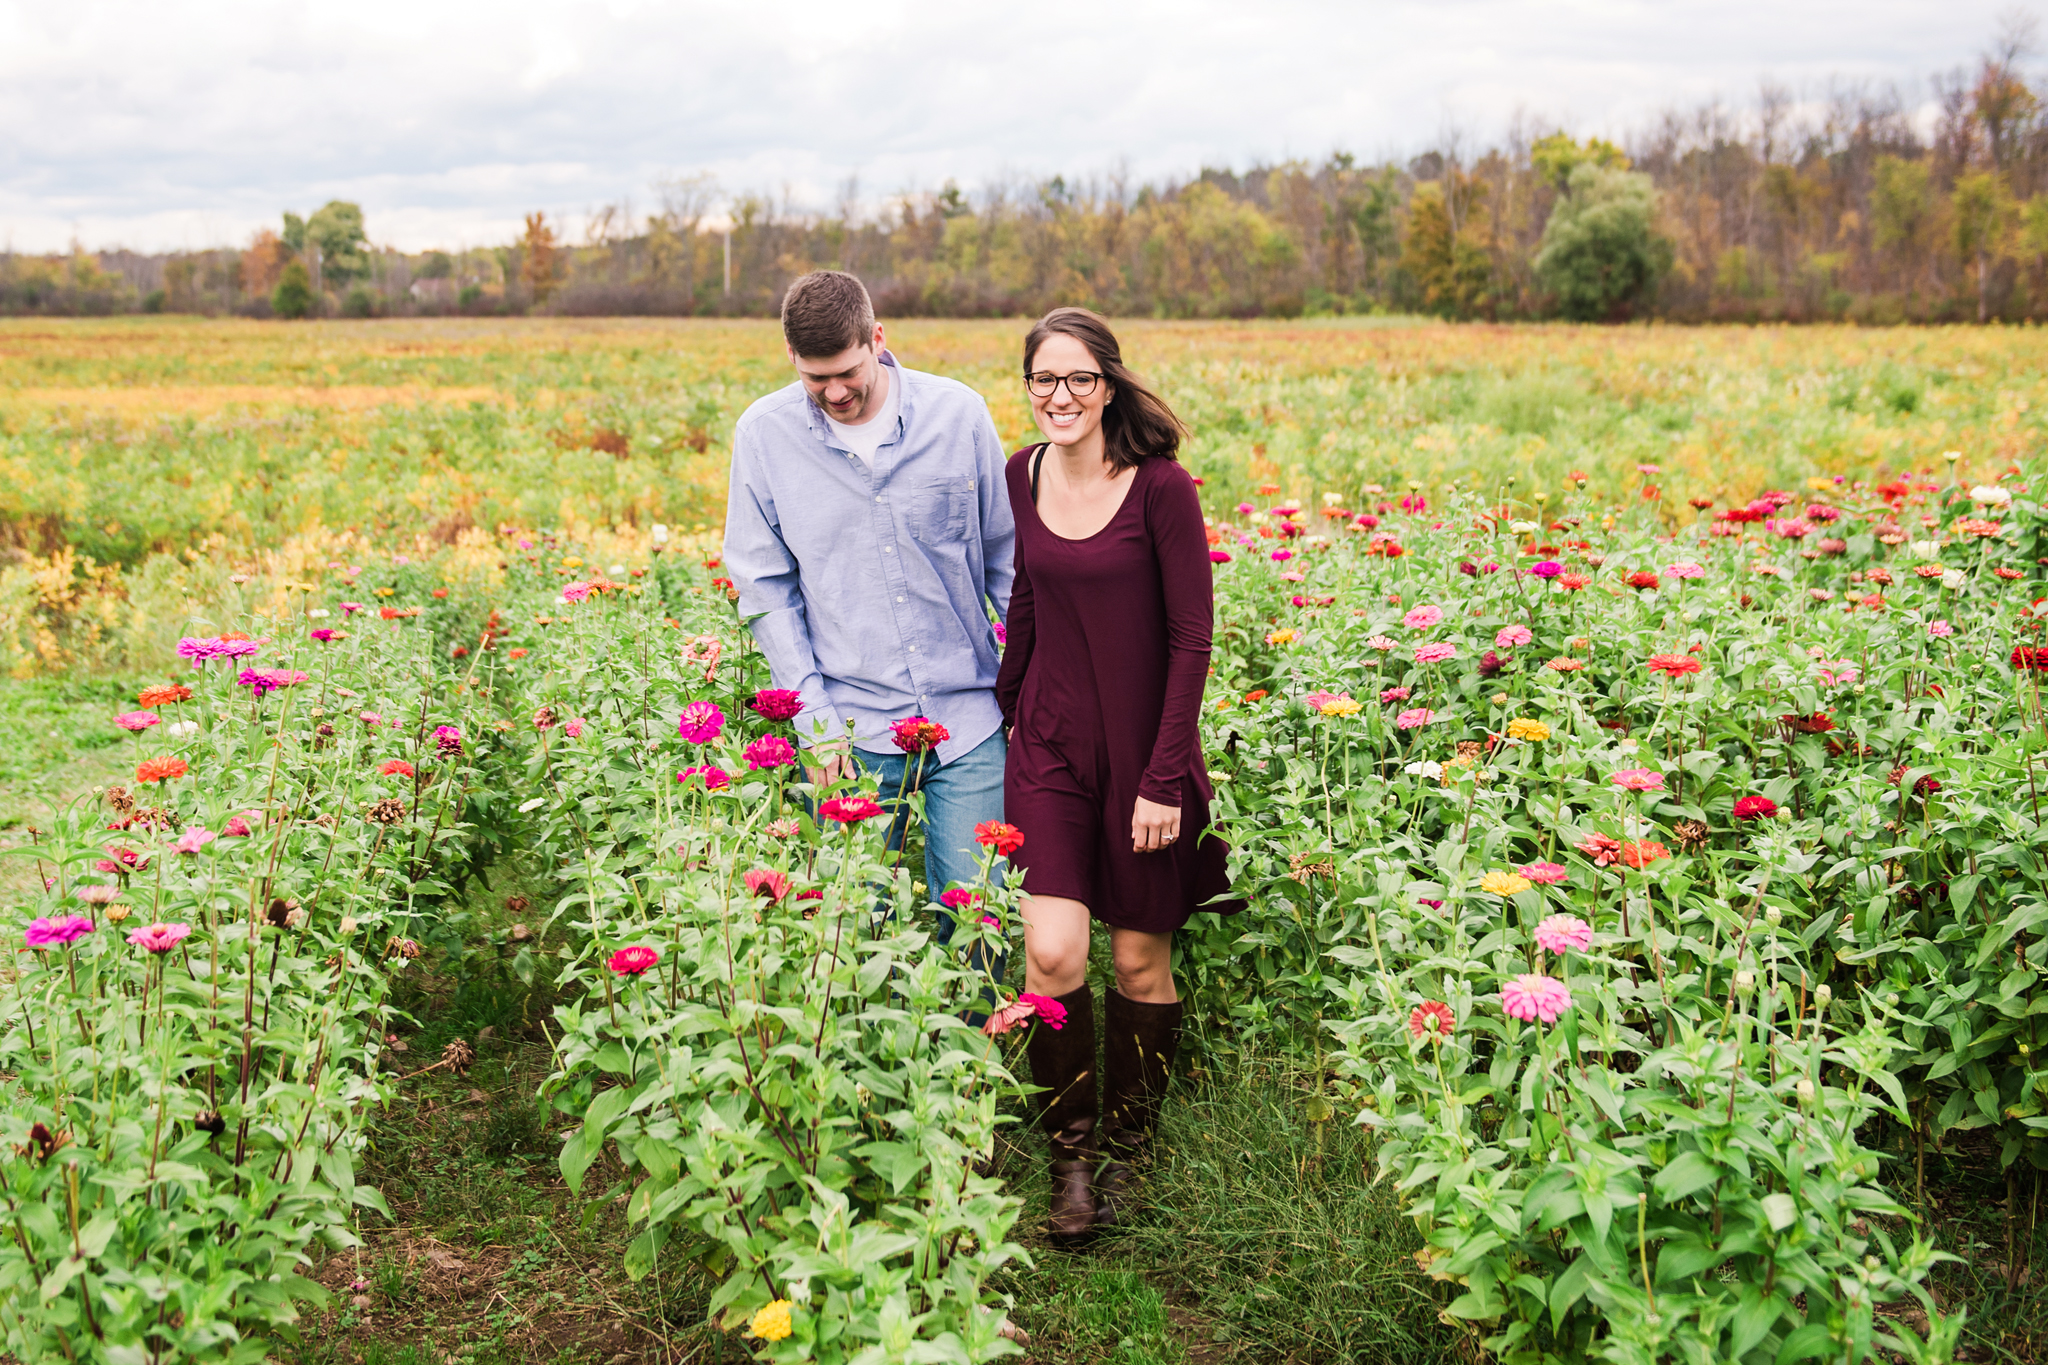 Hurd_Orchards_Rochester_Engagement_Session_JILL_STUDIO_Rochester_NY_Photographer_DSC_2038.jpg